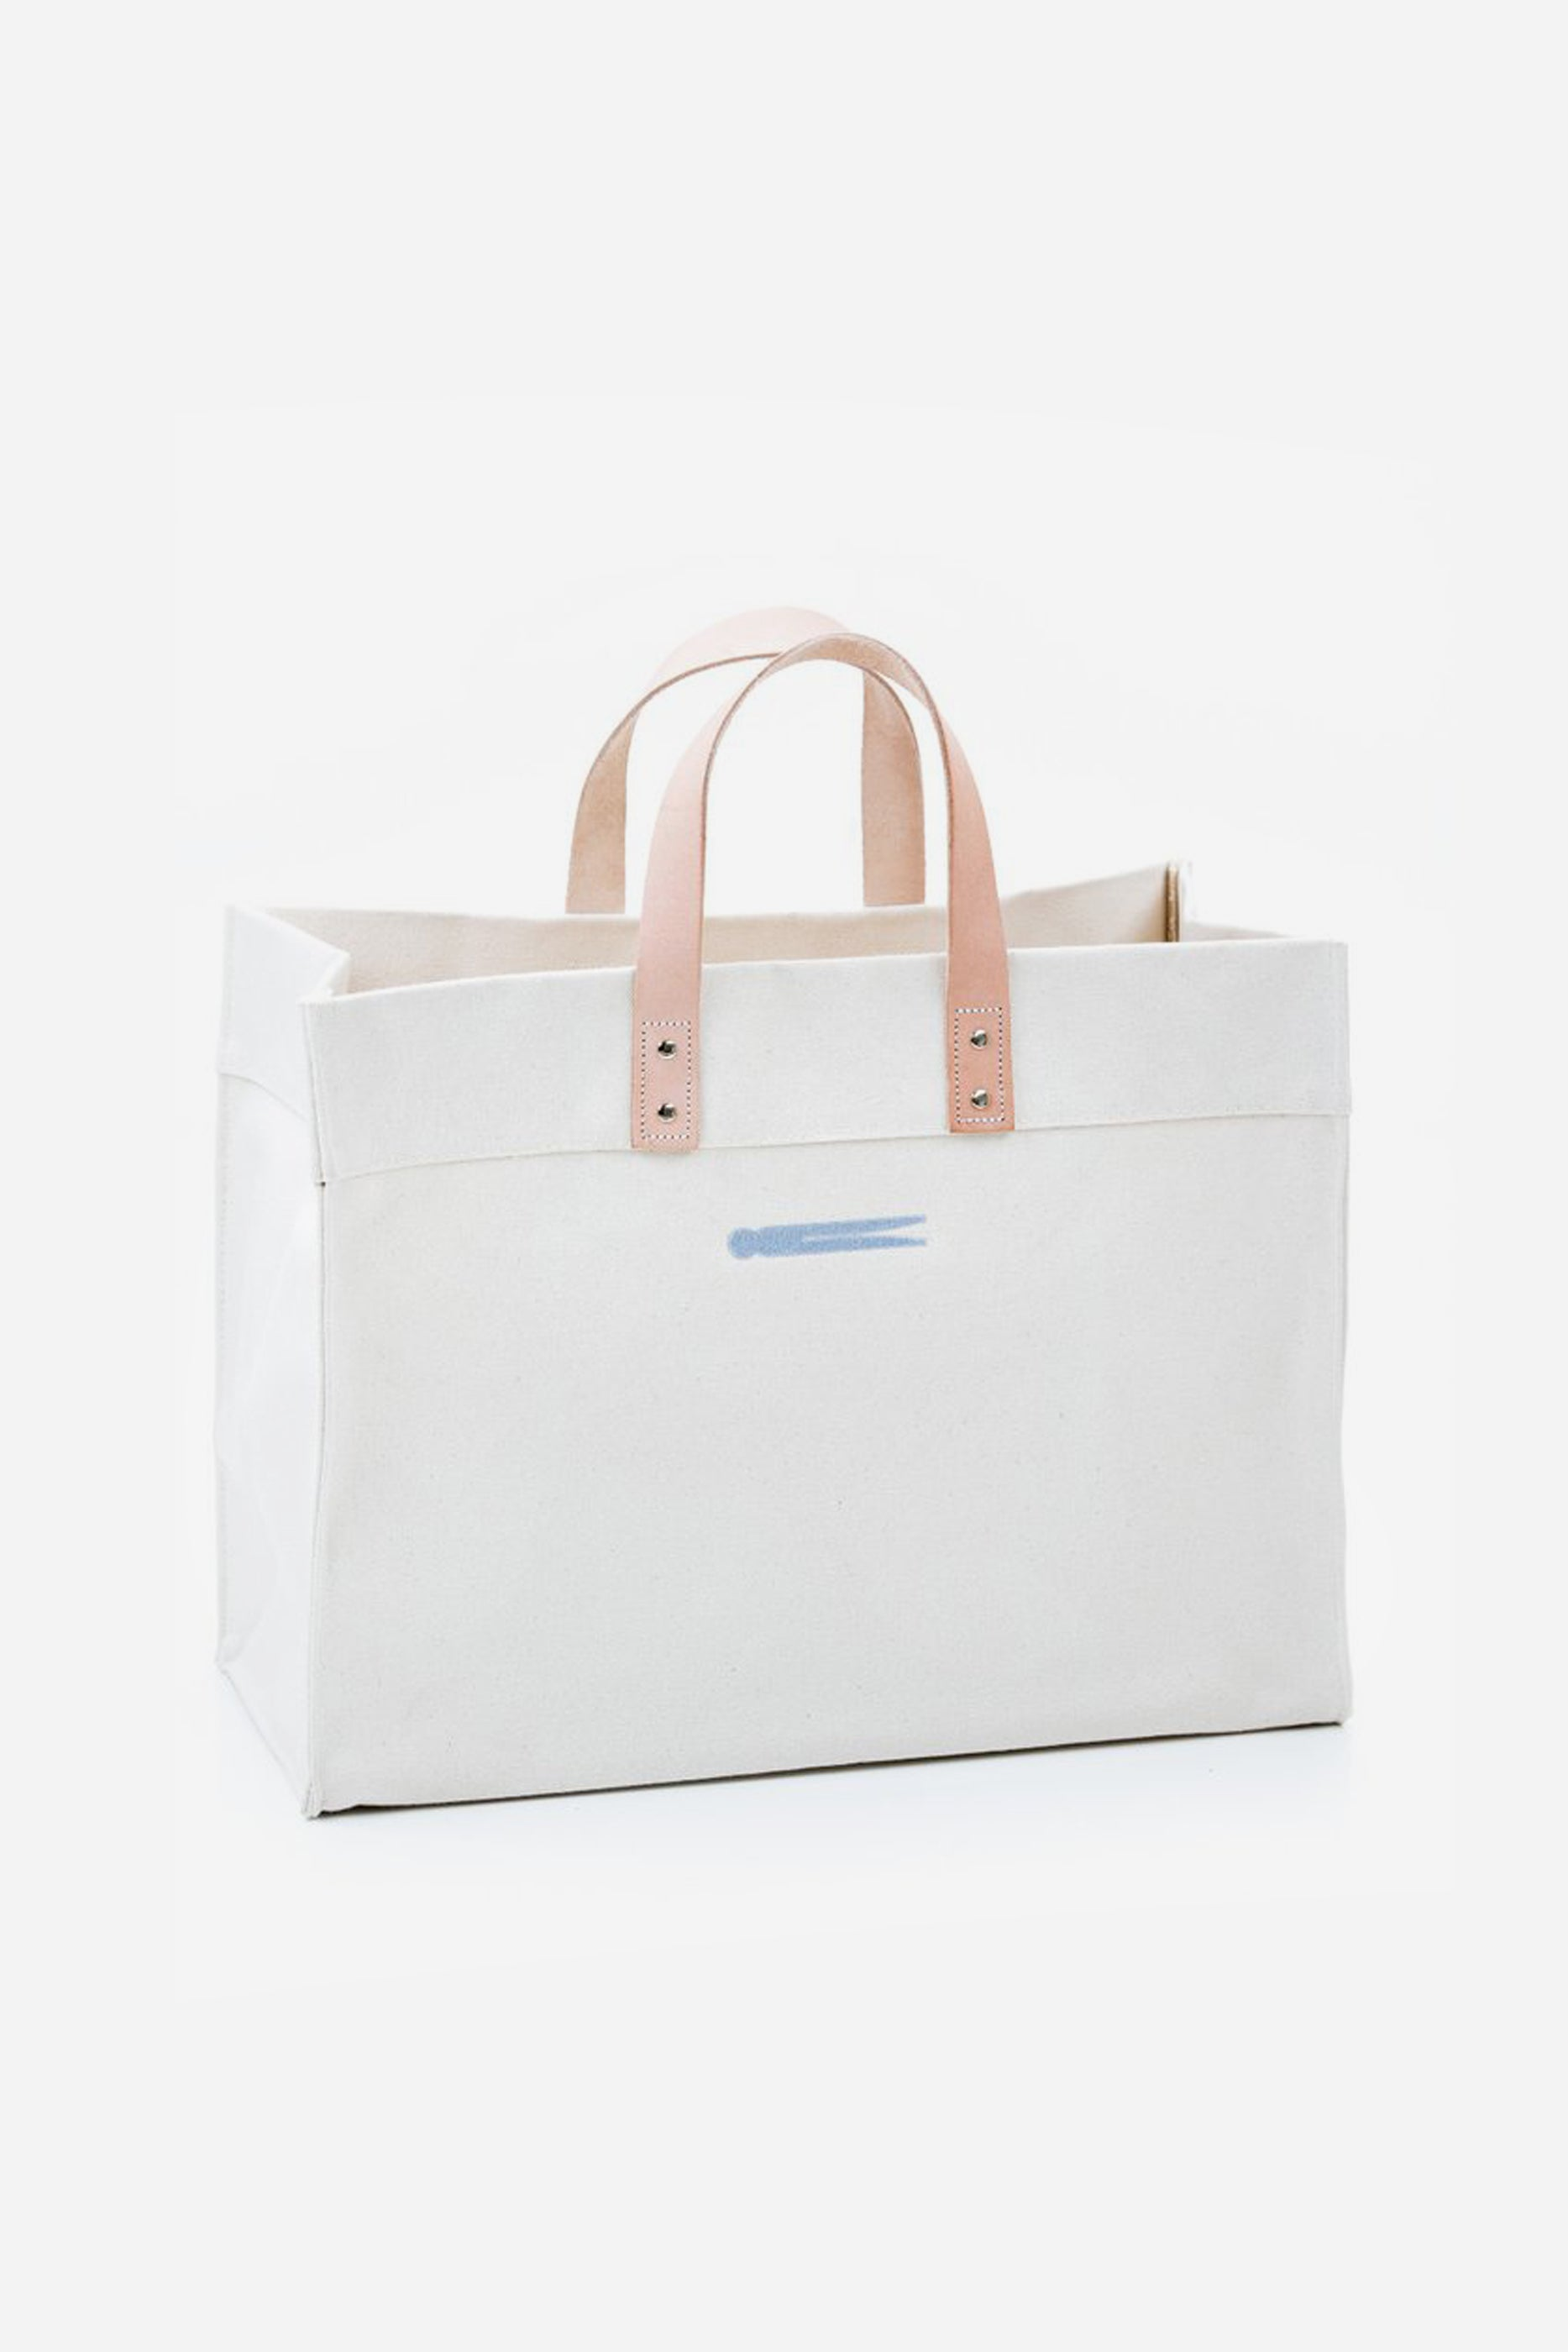 The French Laundry Tote